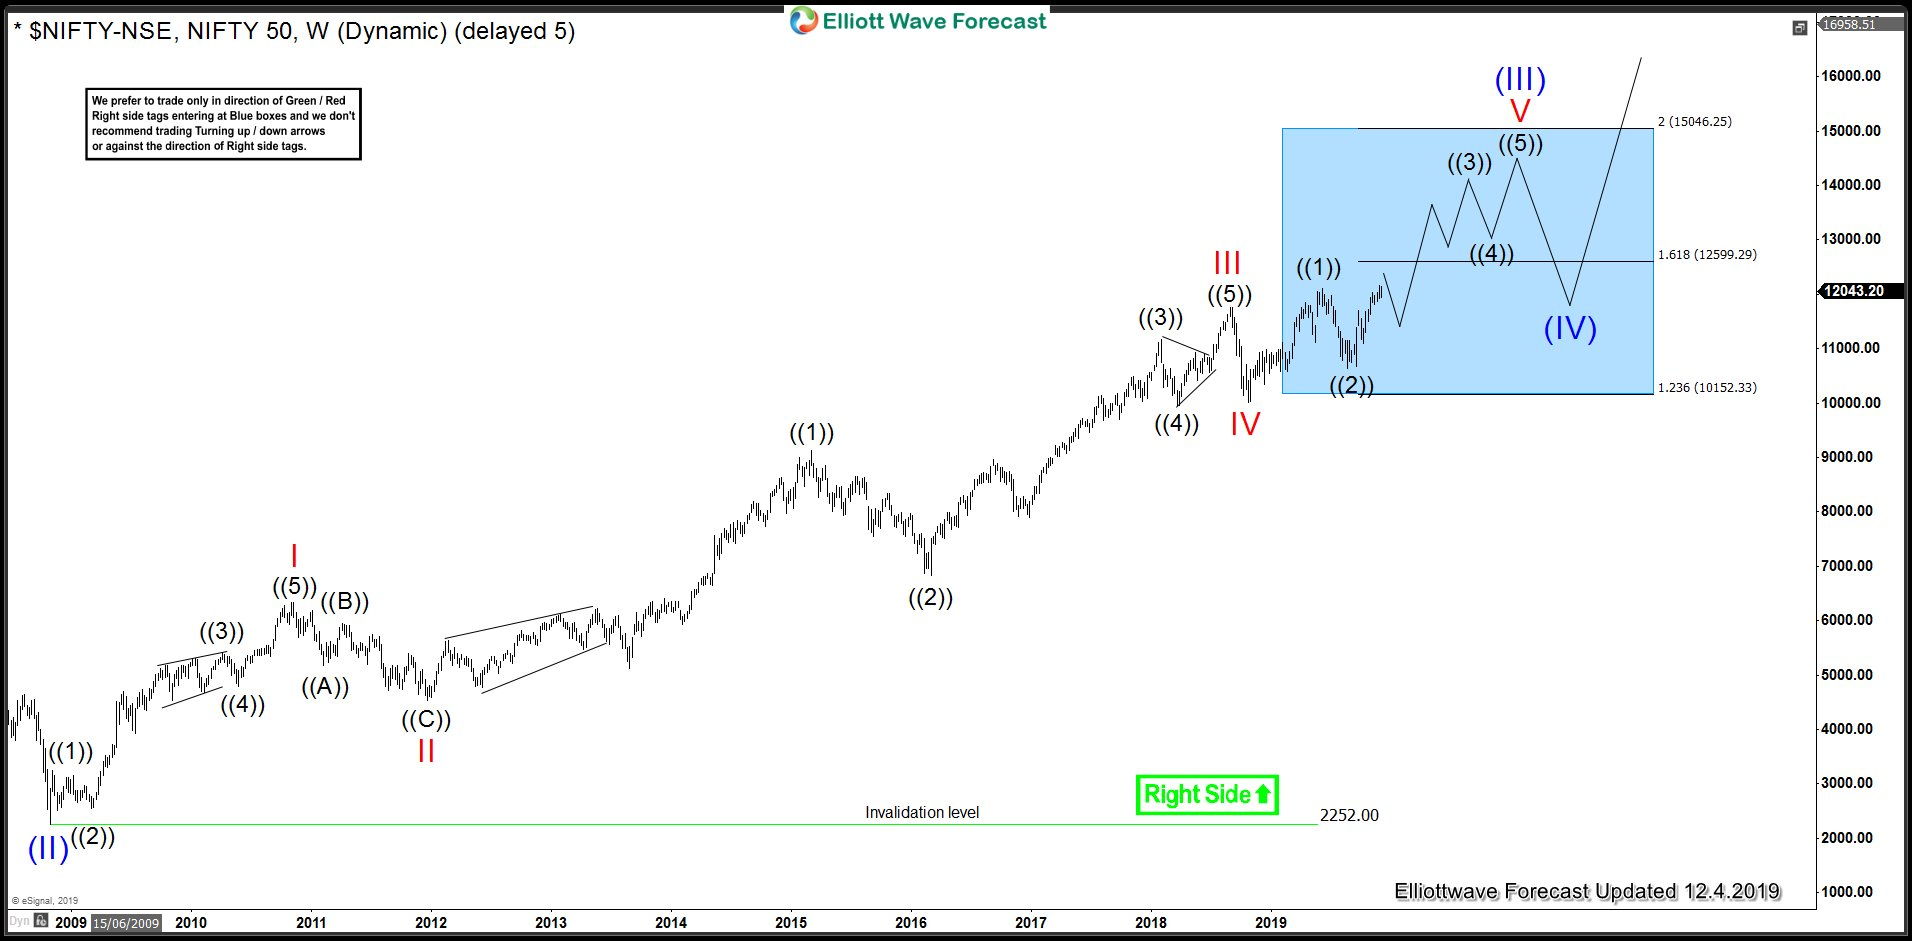 Nifty Long-term Elliott Wave View: Super Cycle wave (III) In Progress